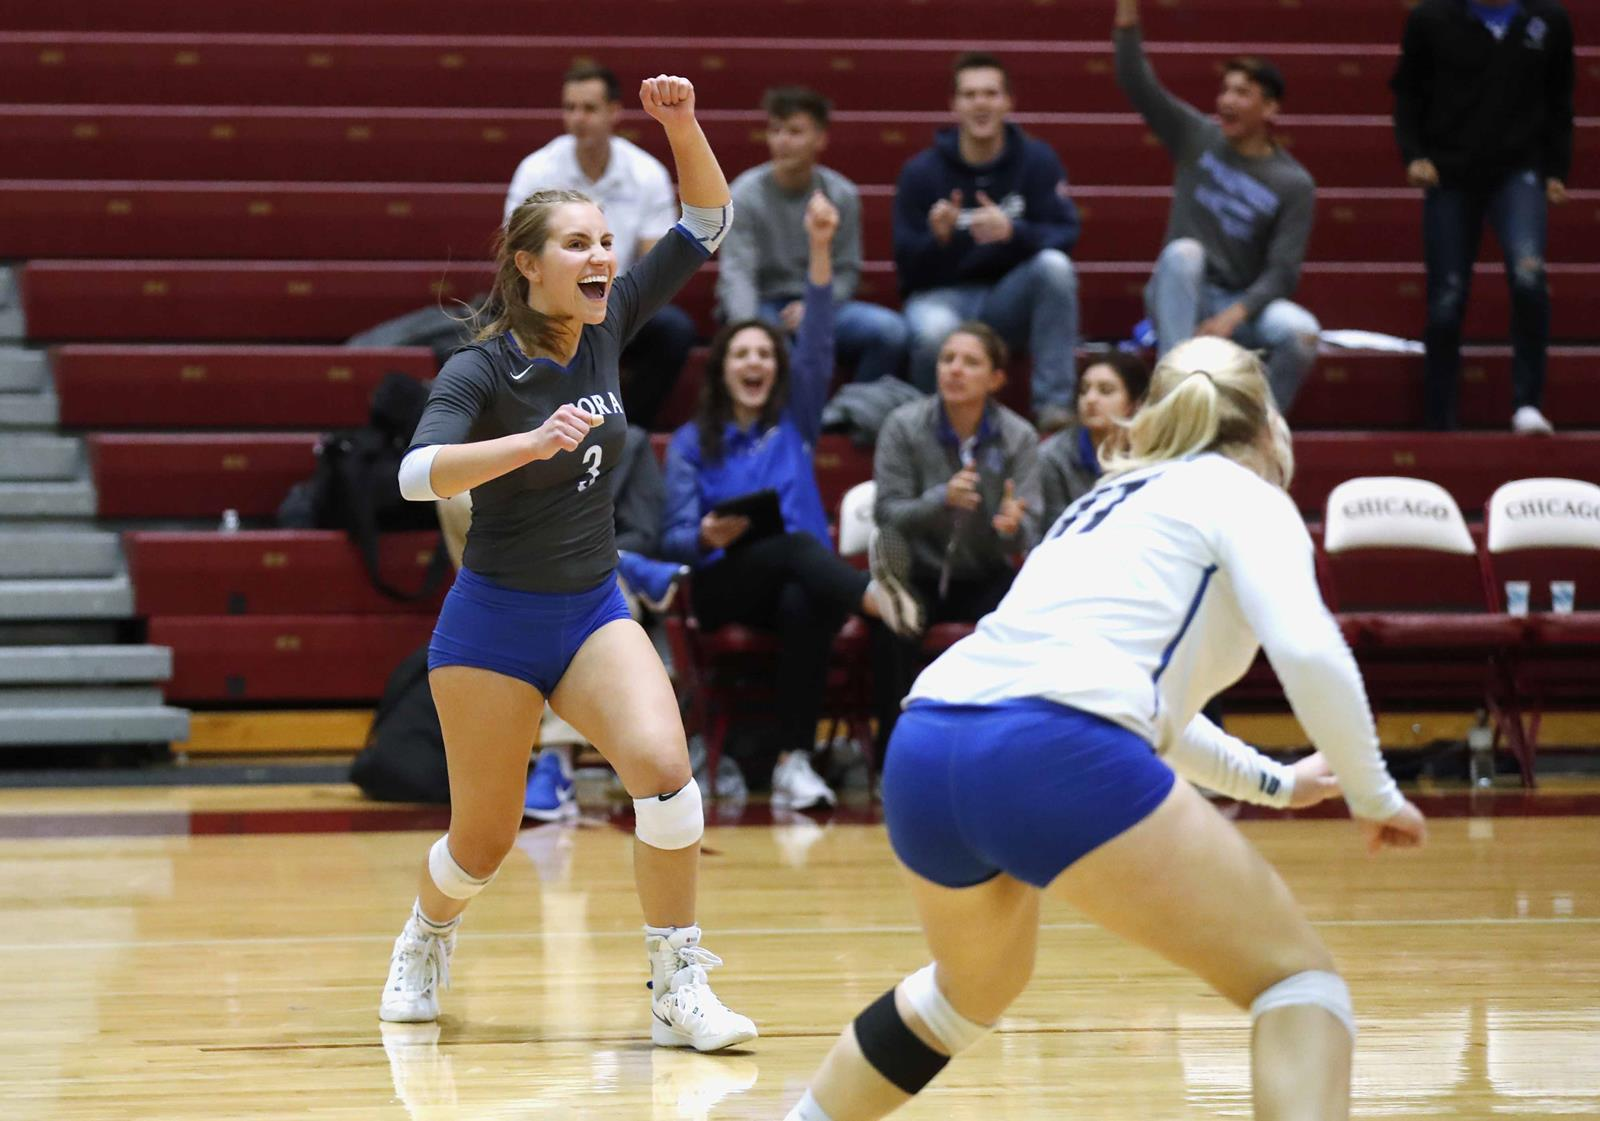 Aurora upset regional host and No. 11-ranked University of Chicago in five sets to advance to Sunday's regional final in the NCAA Division III Women's Volleyball Championship. (Photo credit: Steve Woltmann)